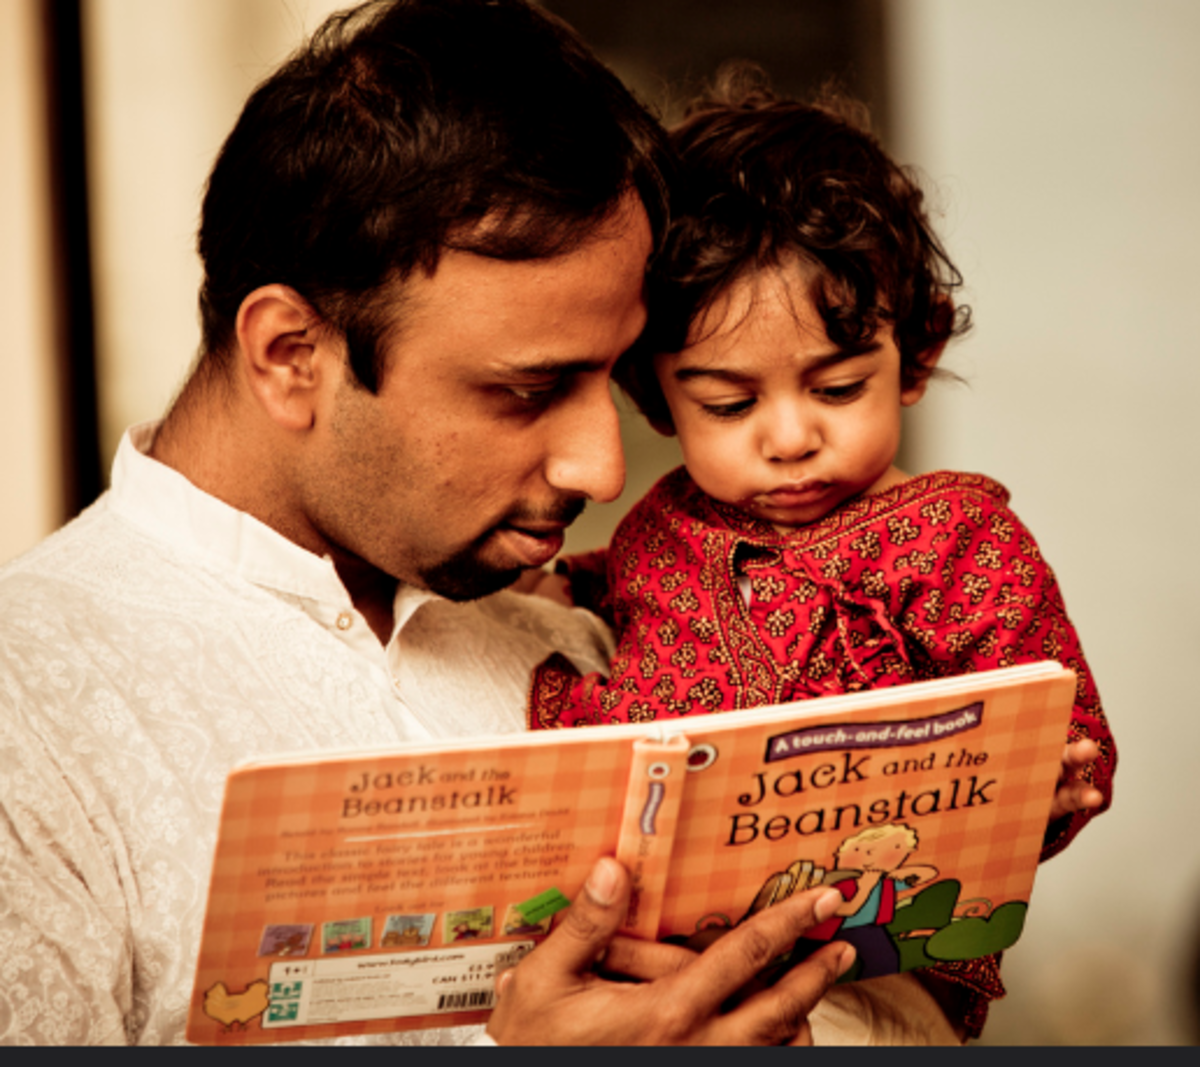 It's never too early to build the foundation for reading.